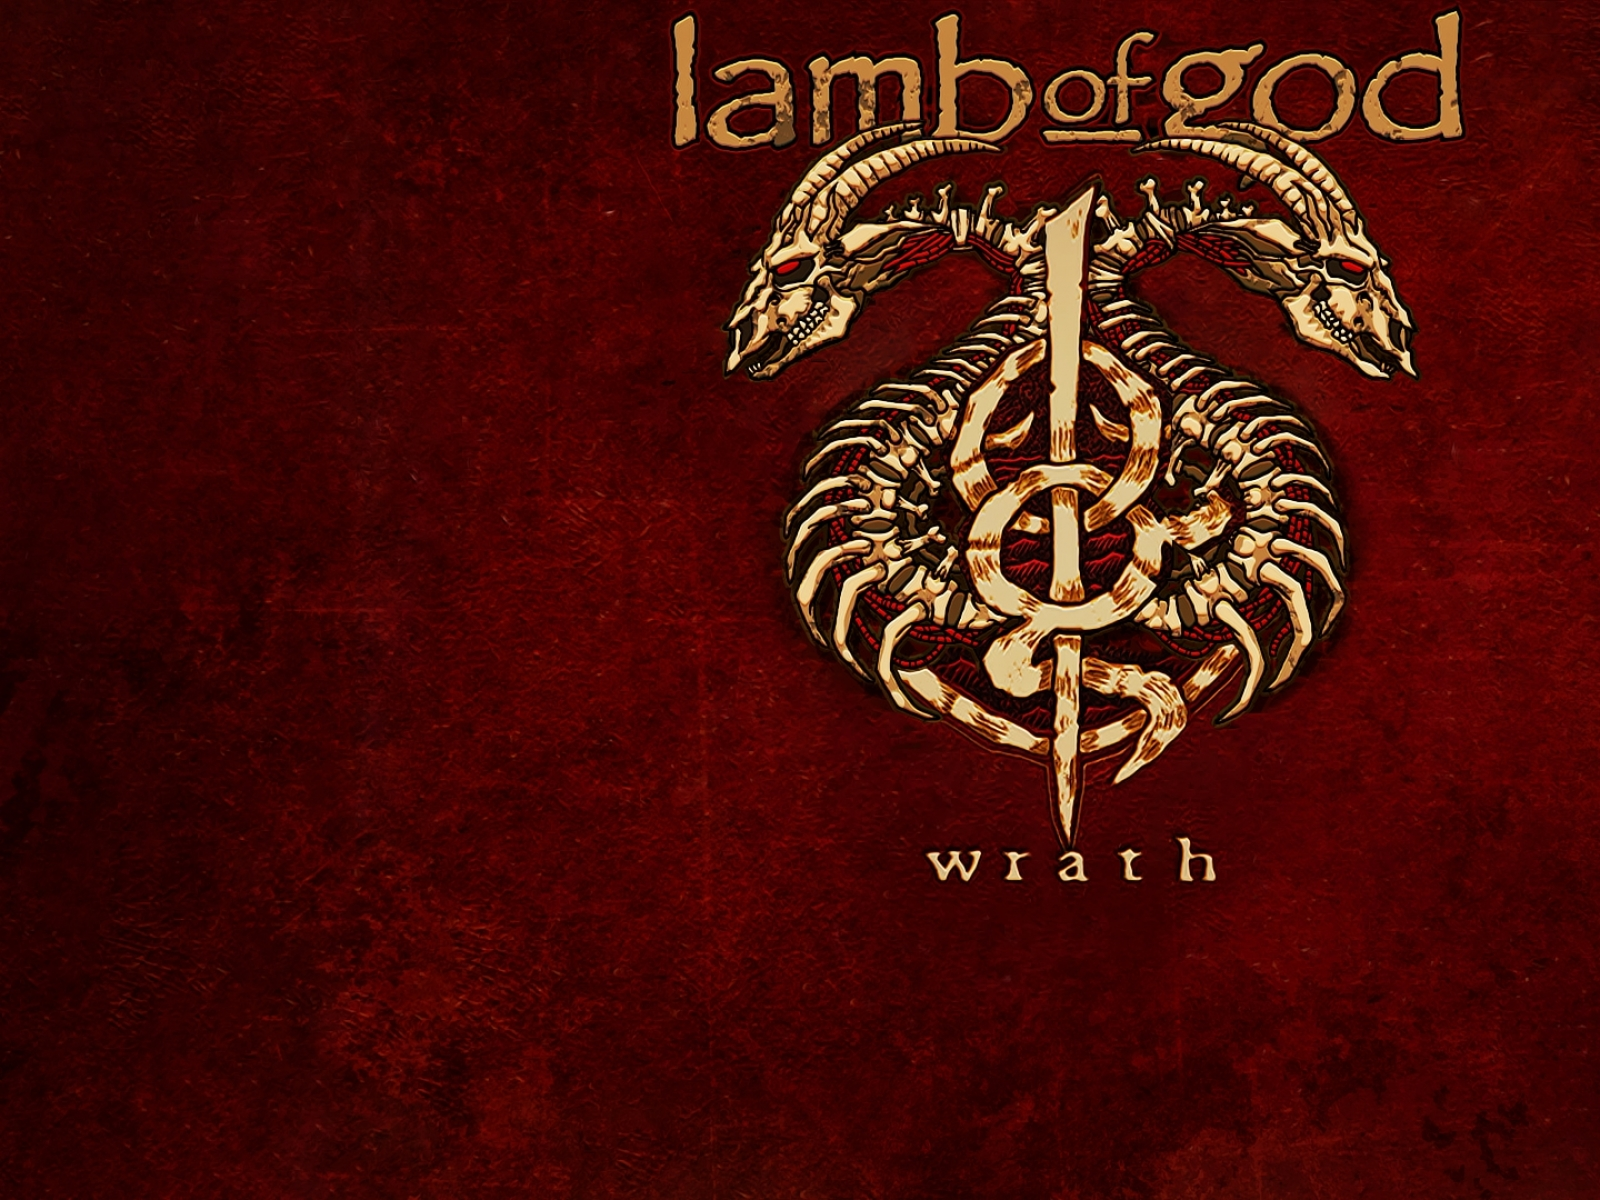 Download Wallpapers Download 1600x1200 lamb of god wrath by panico747 1600x1200